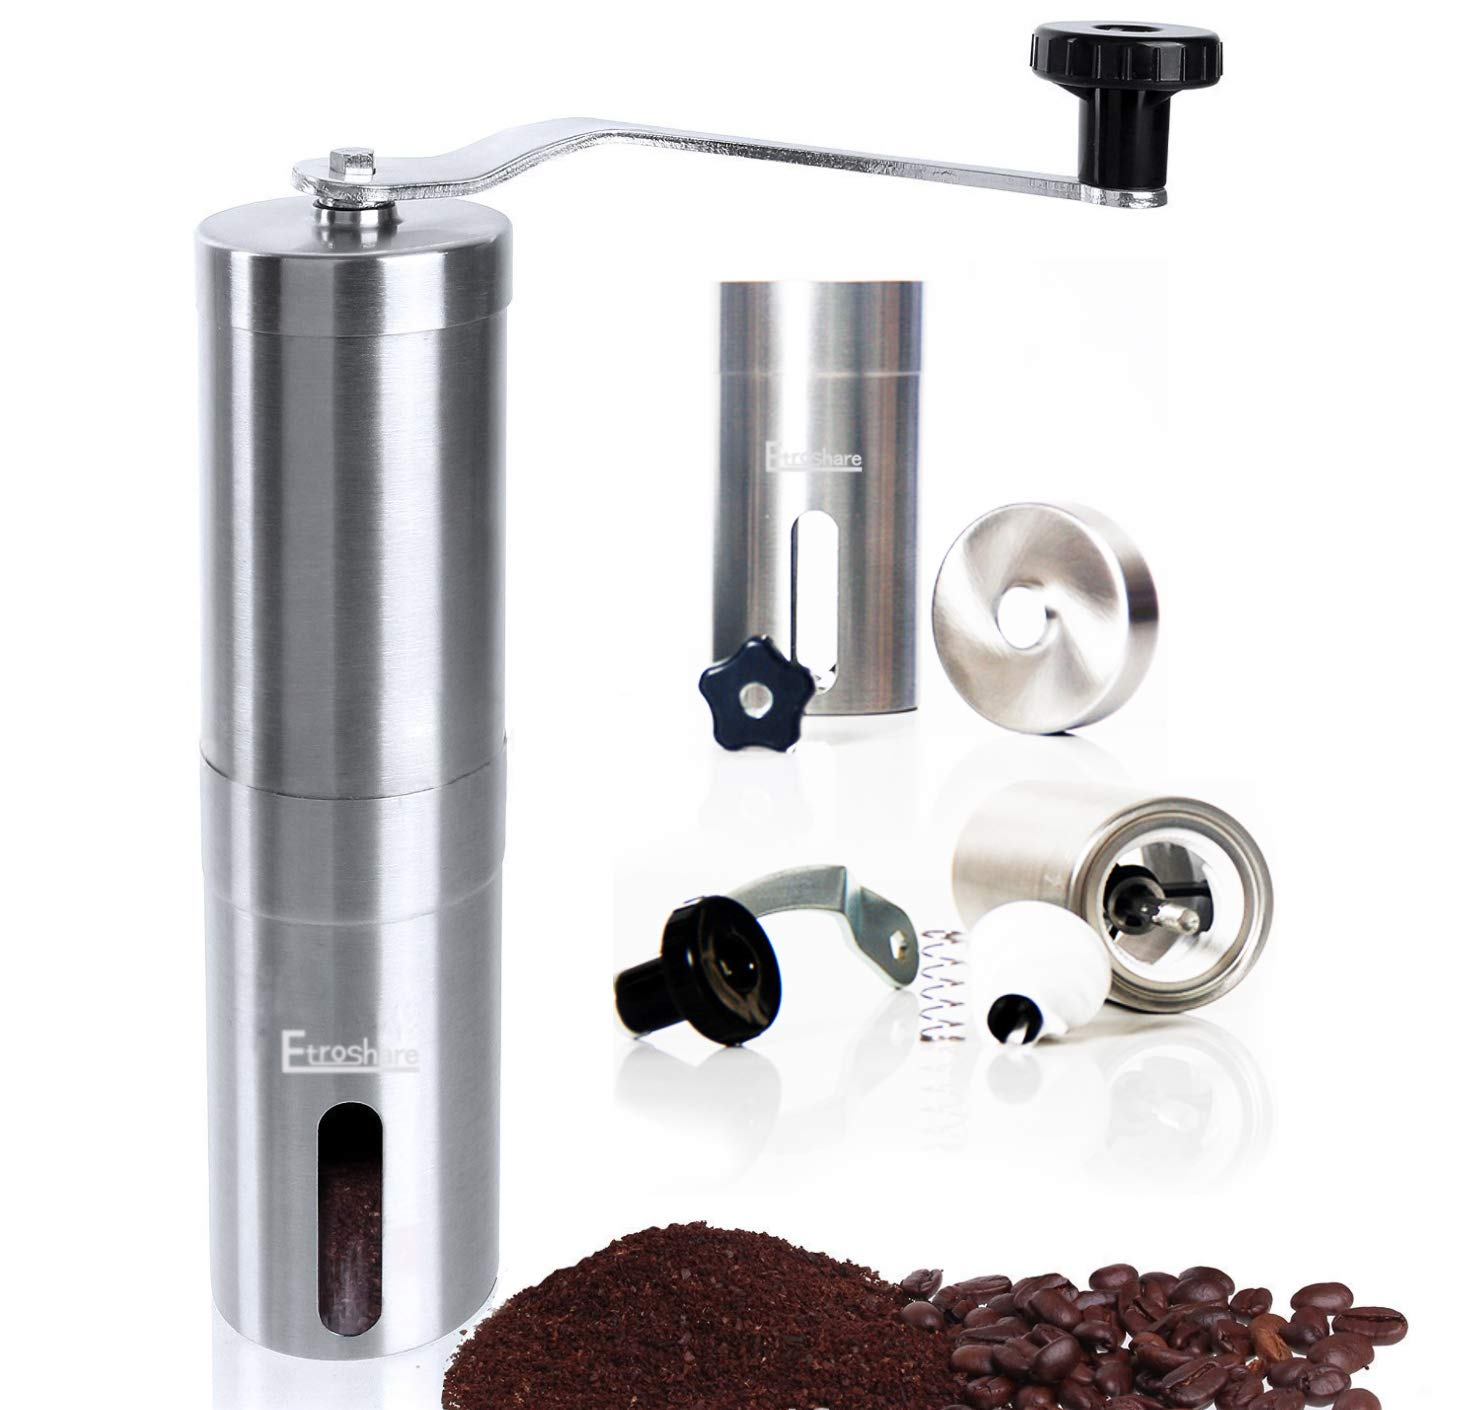 KeeTrnLiv Manual Coffee Grinder Conical Burr Spice Herb Pepper Mill Stainless Steel Grinder Without Noise